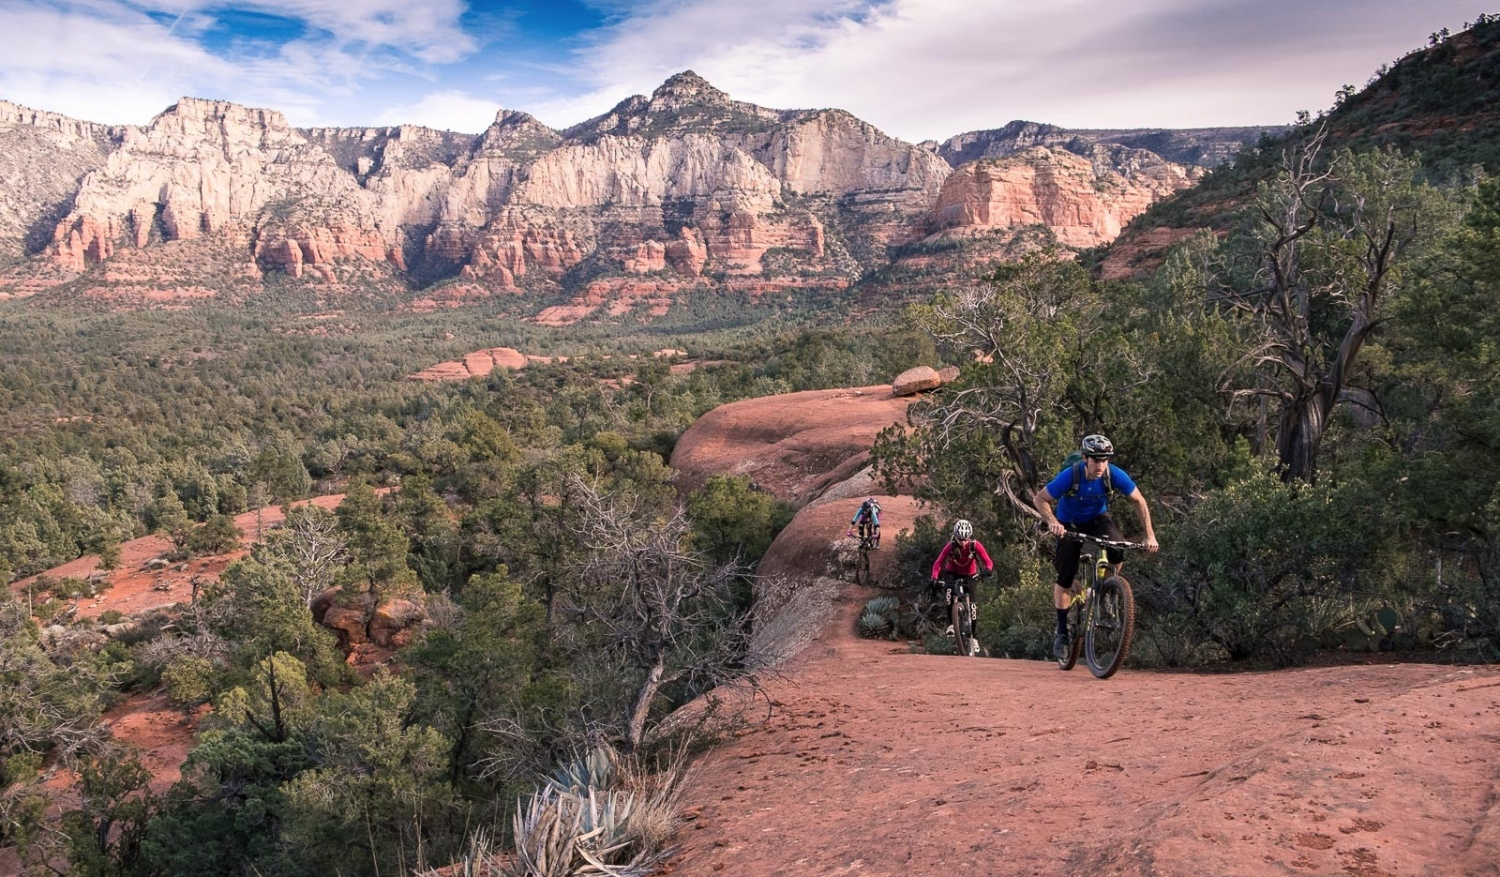 Riding the Highline Trail in Sedona, Arizona